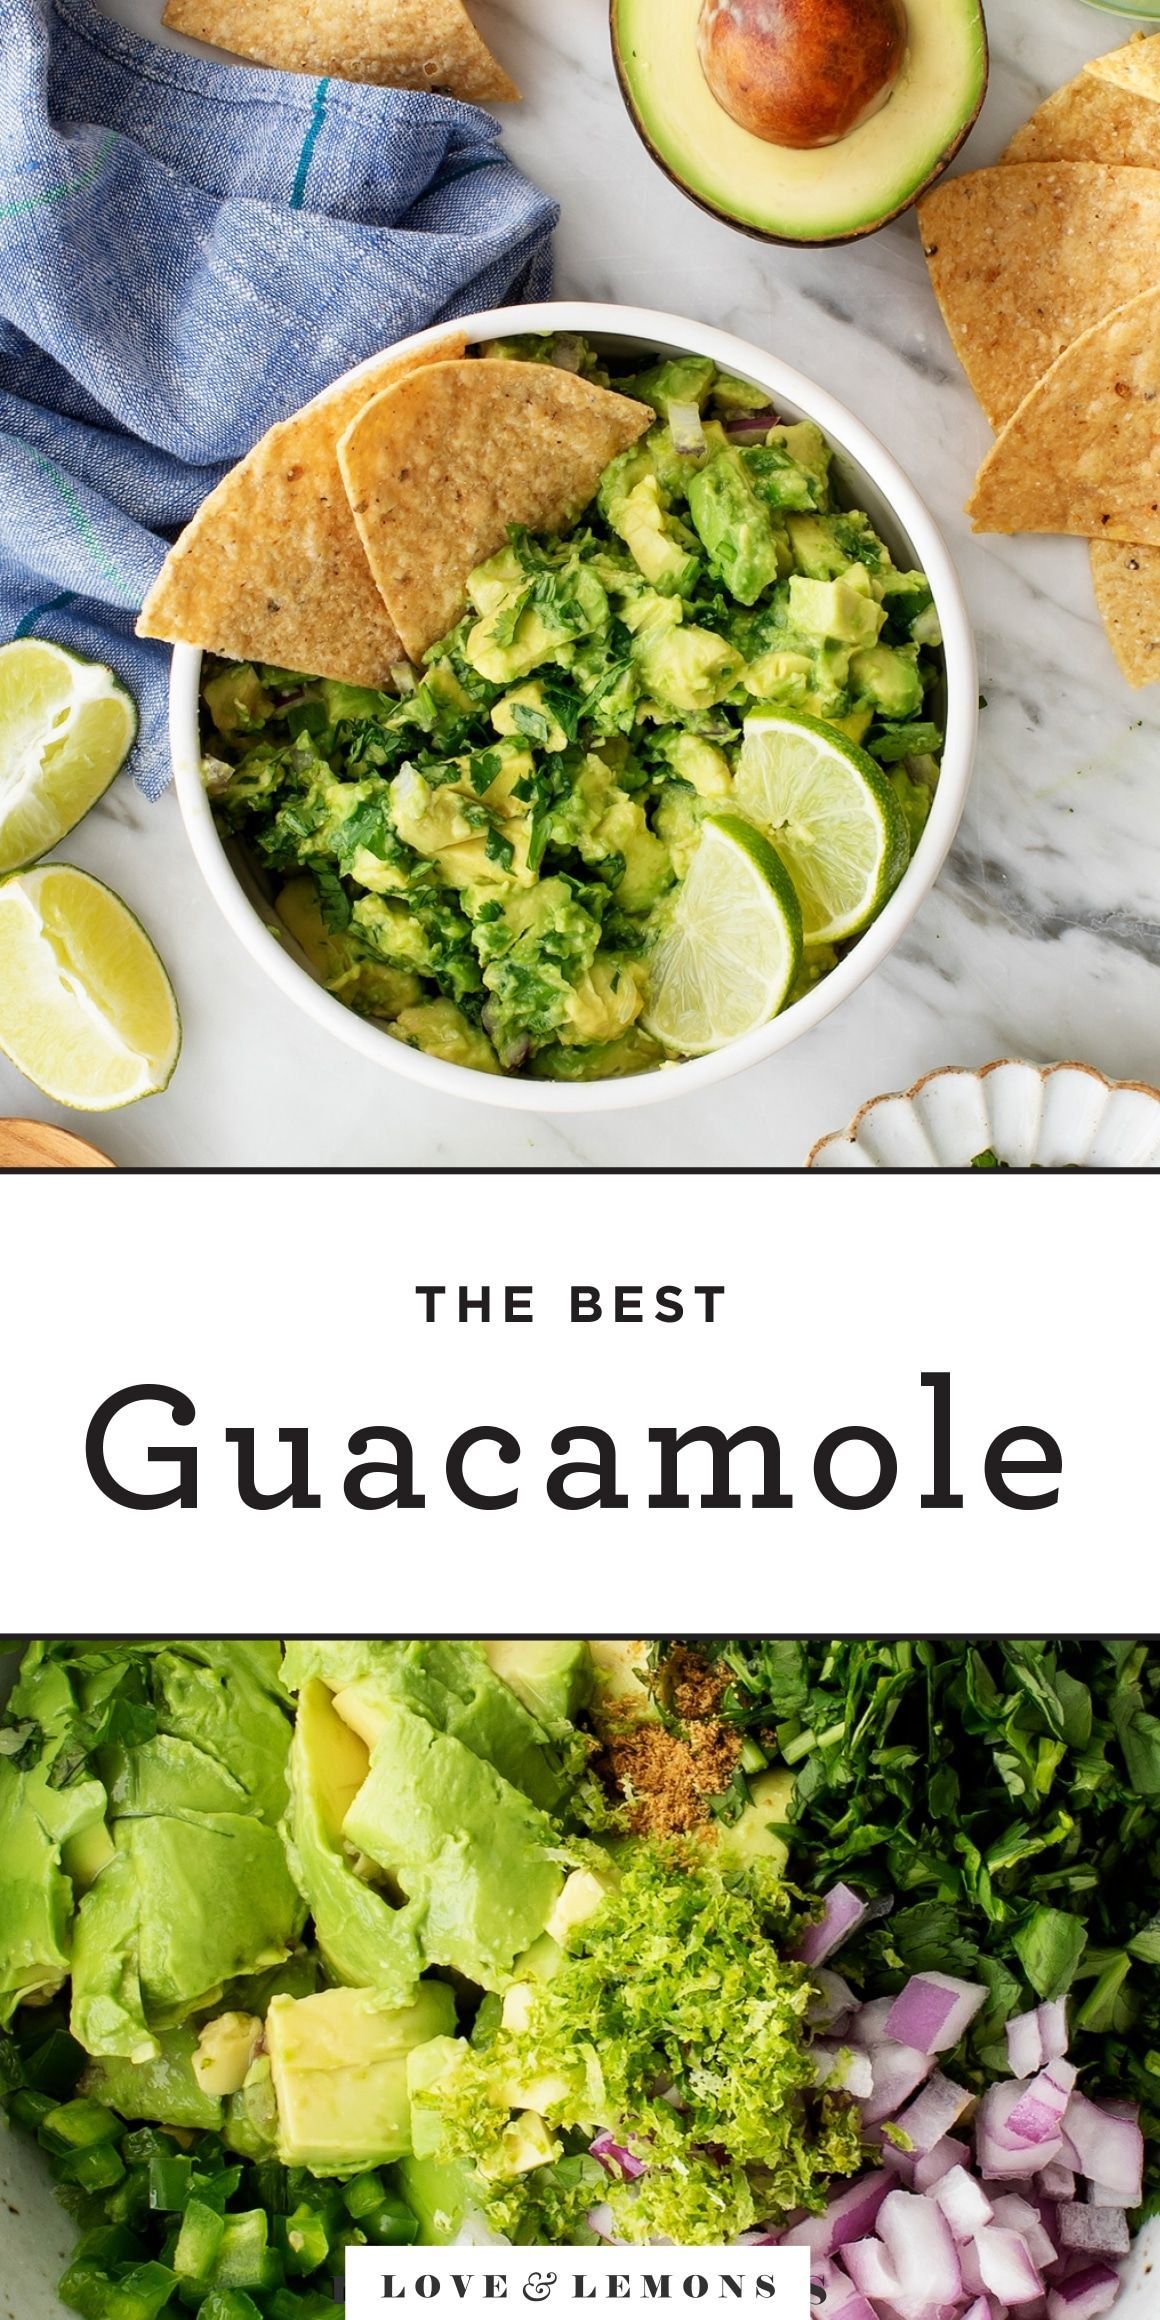 Can You Substitute Lime For Lemon In Guacamole The Best Guacamole Recipe Guacamole Recipe Best Guacamole Recipe Food Recipes